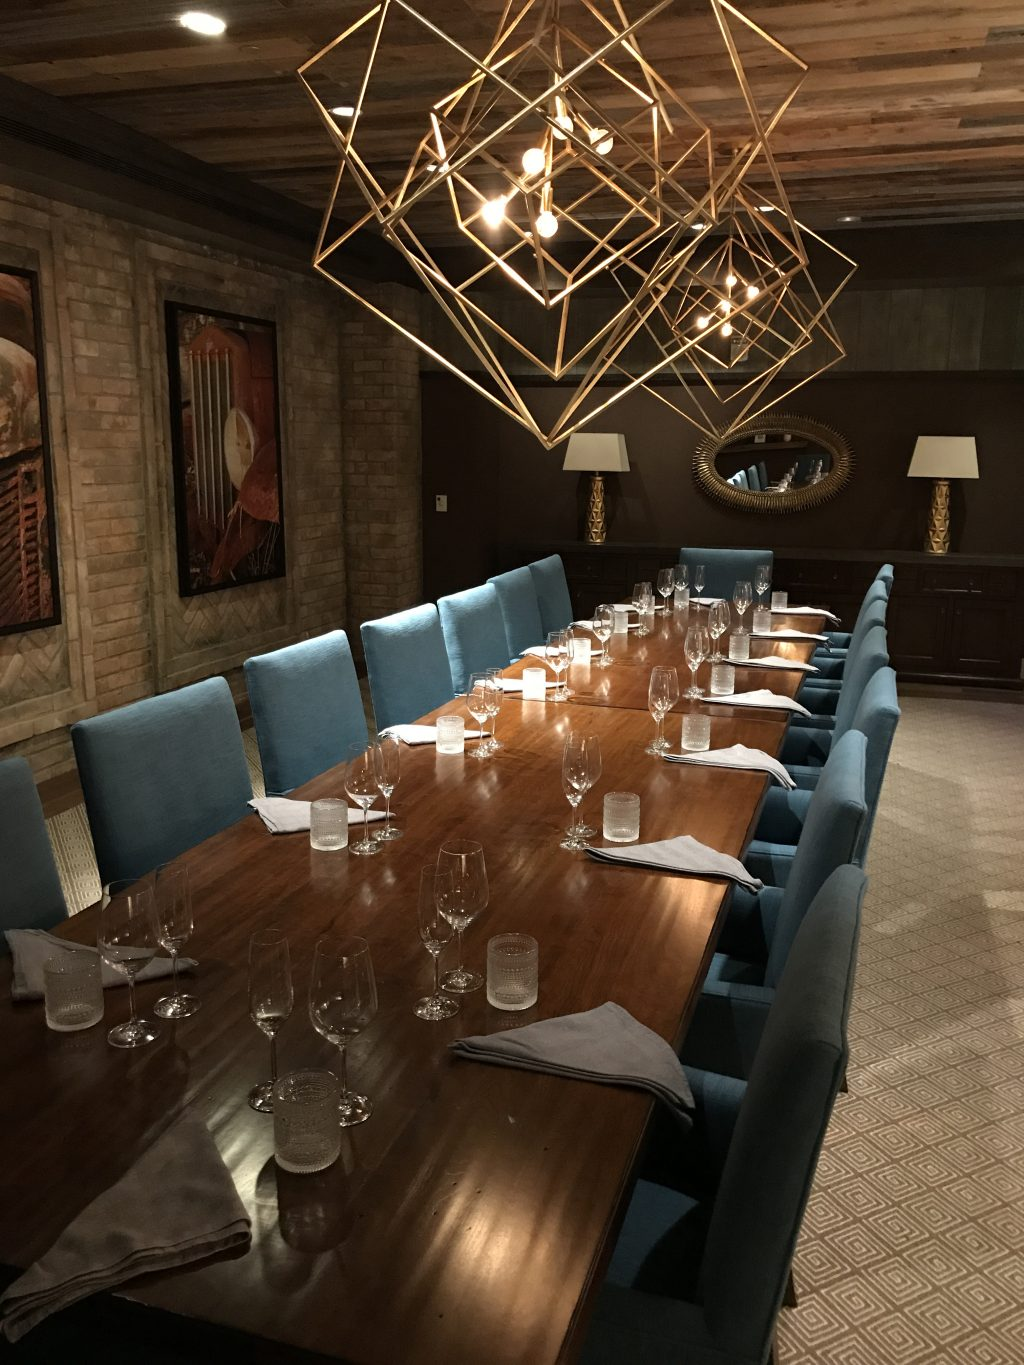 Garrison personal dining room with long wood table and place settings and geometric shaped brass tube chandeliers